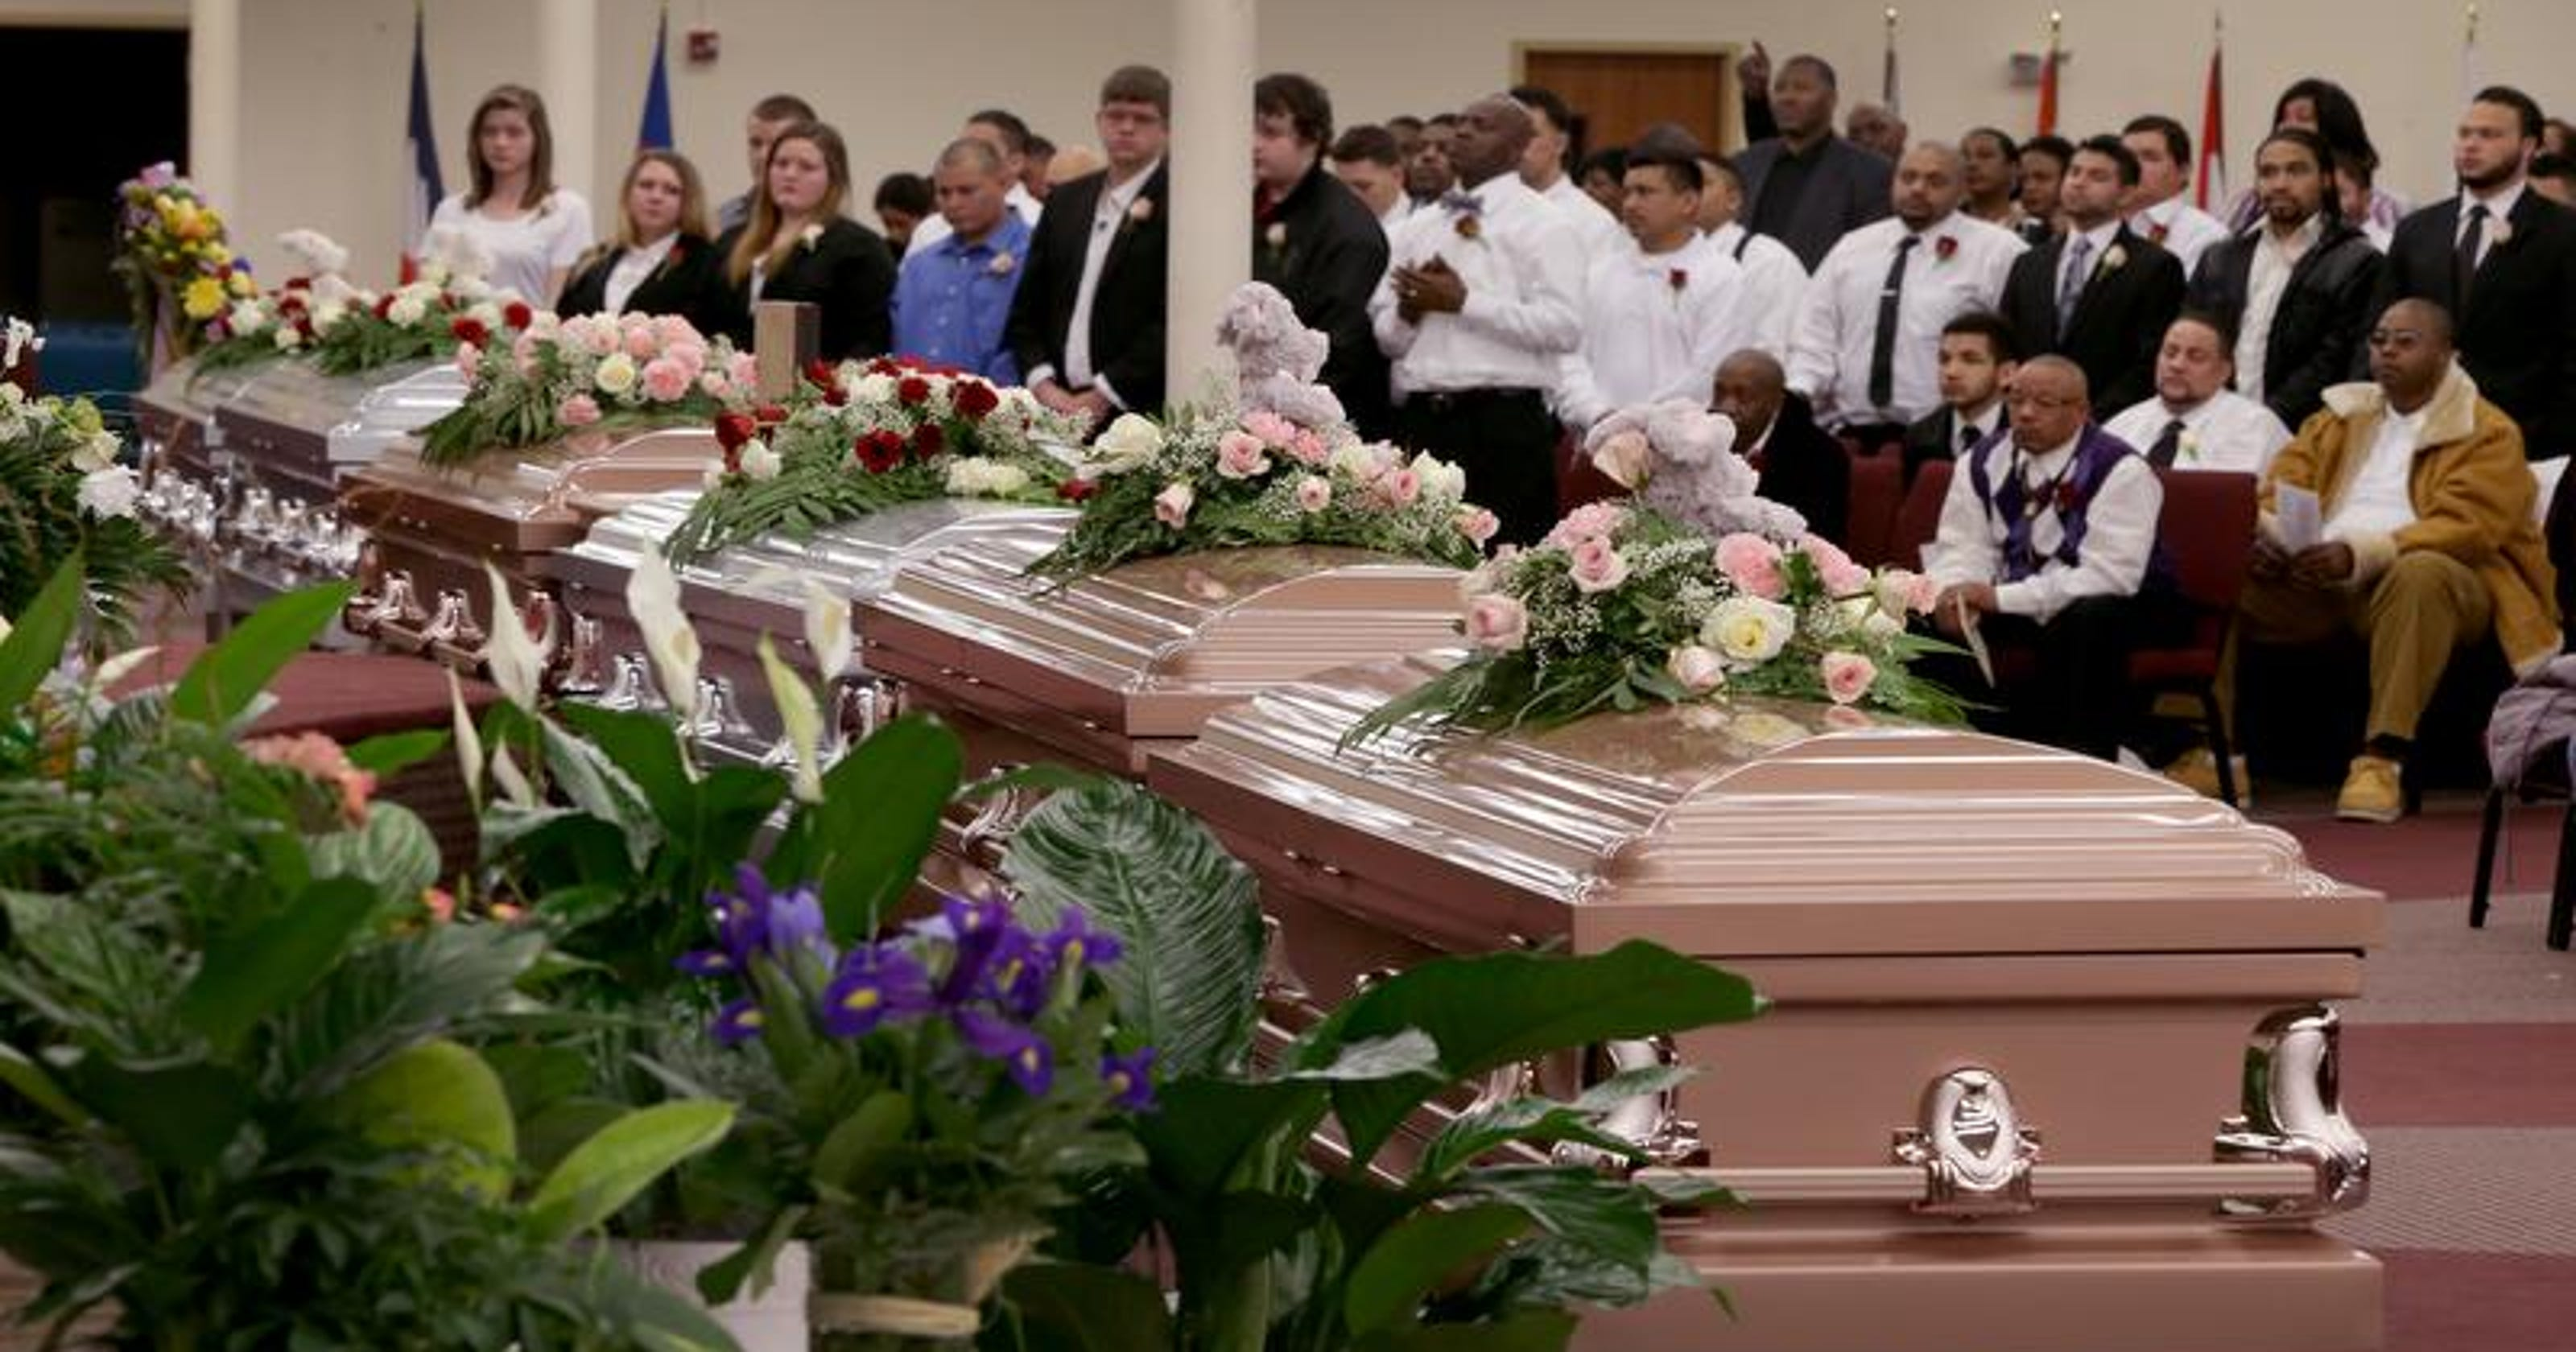 Guerra family remembered fondly at funeral izmirmasajfo